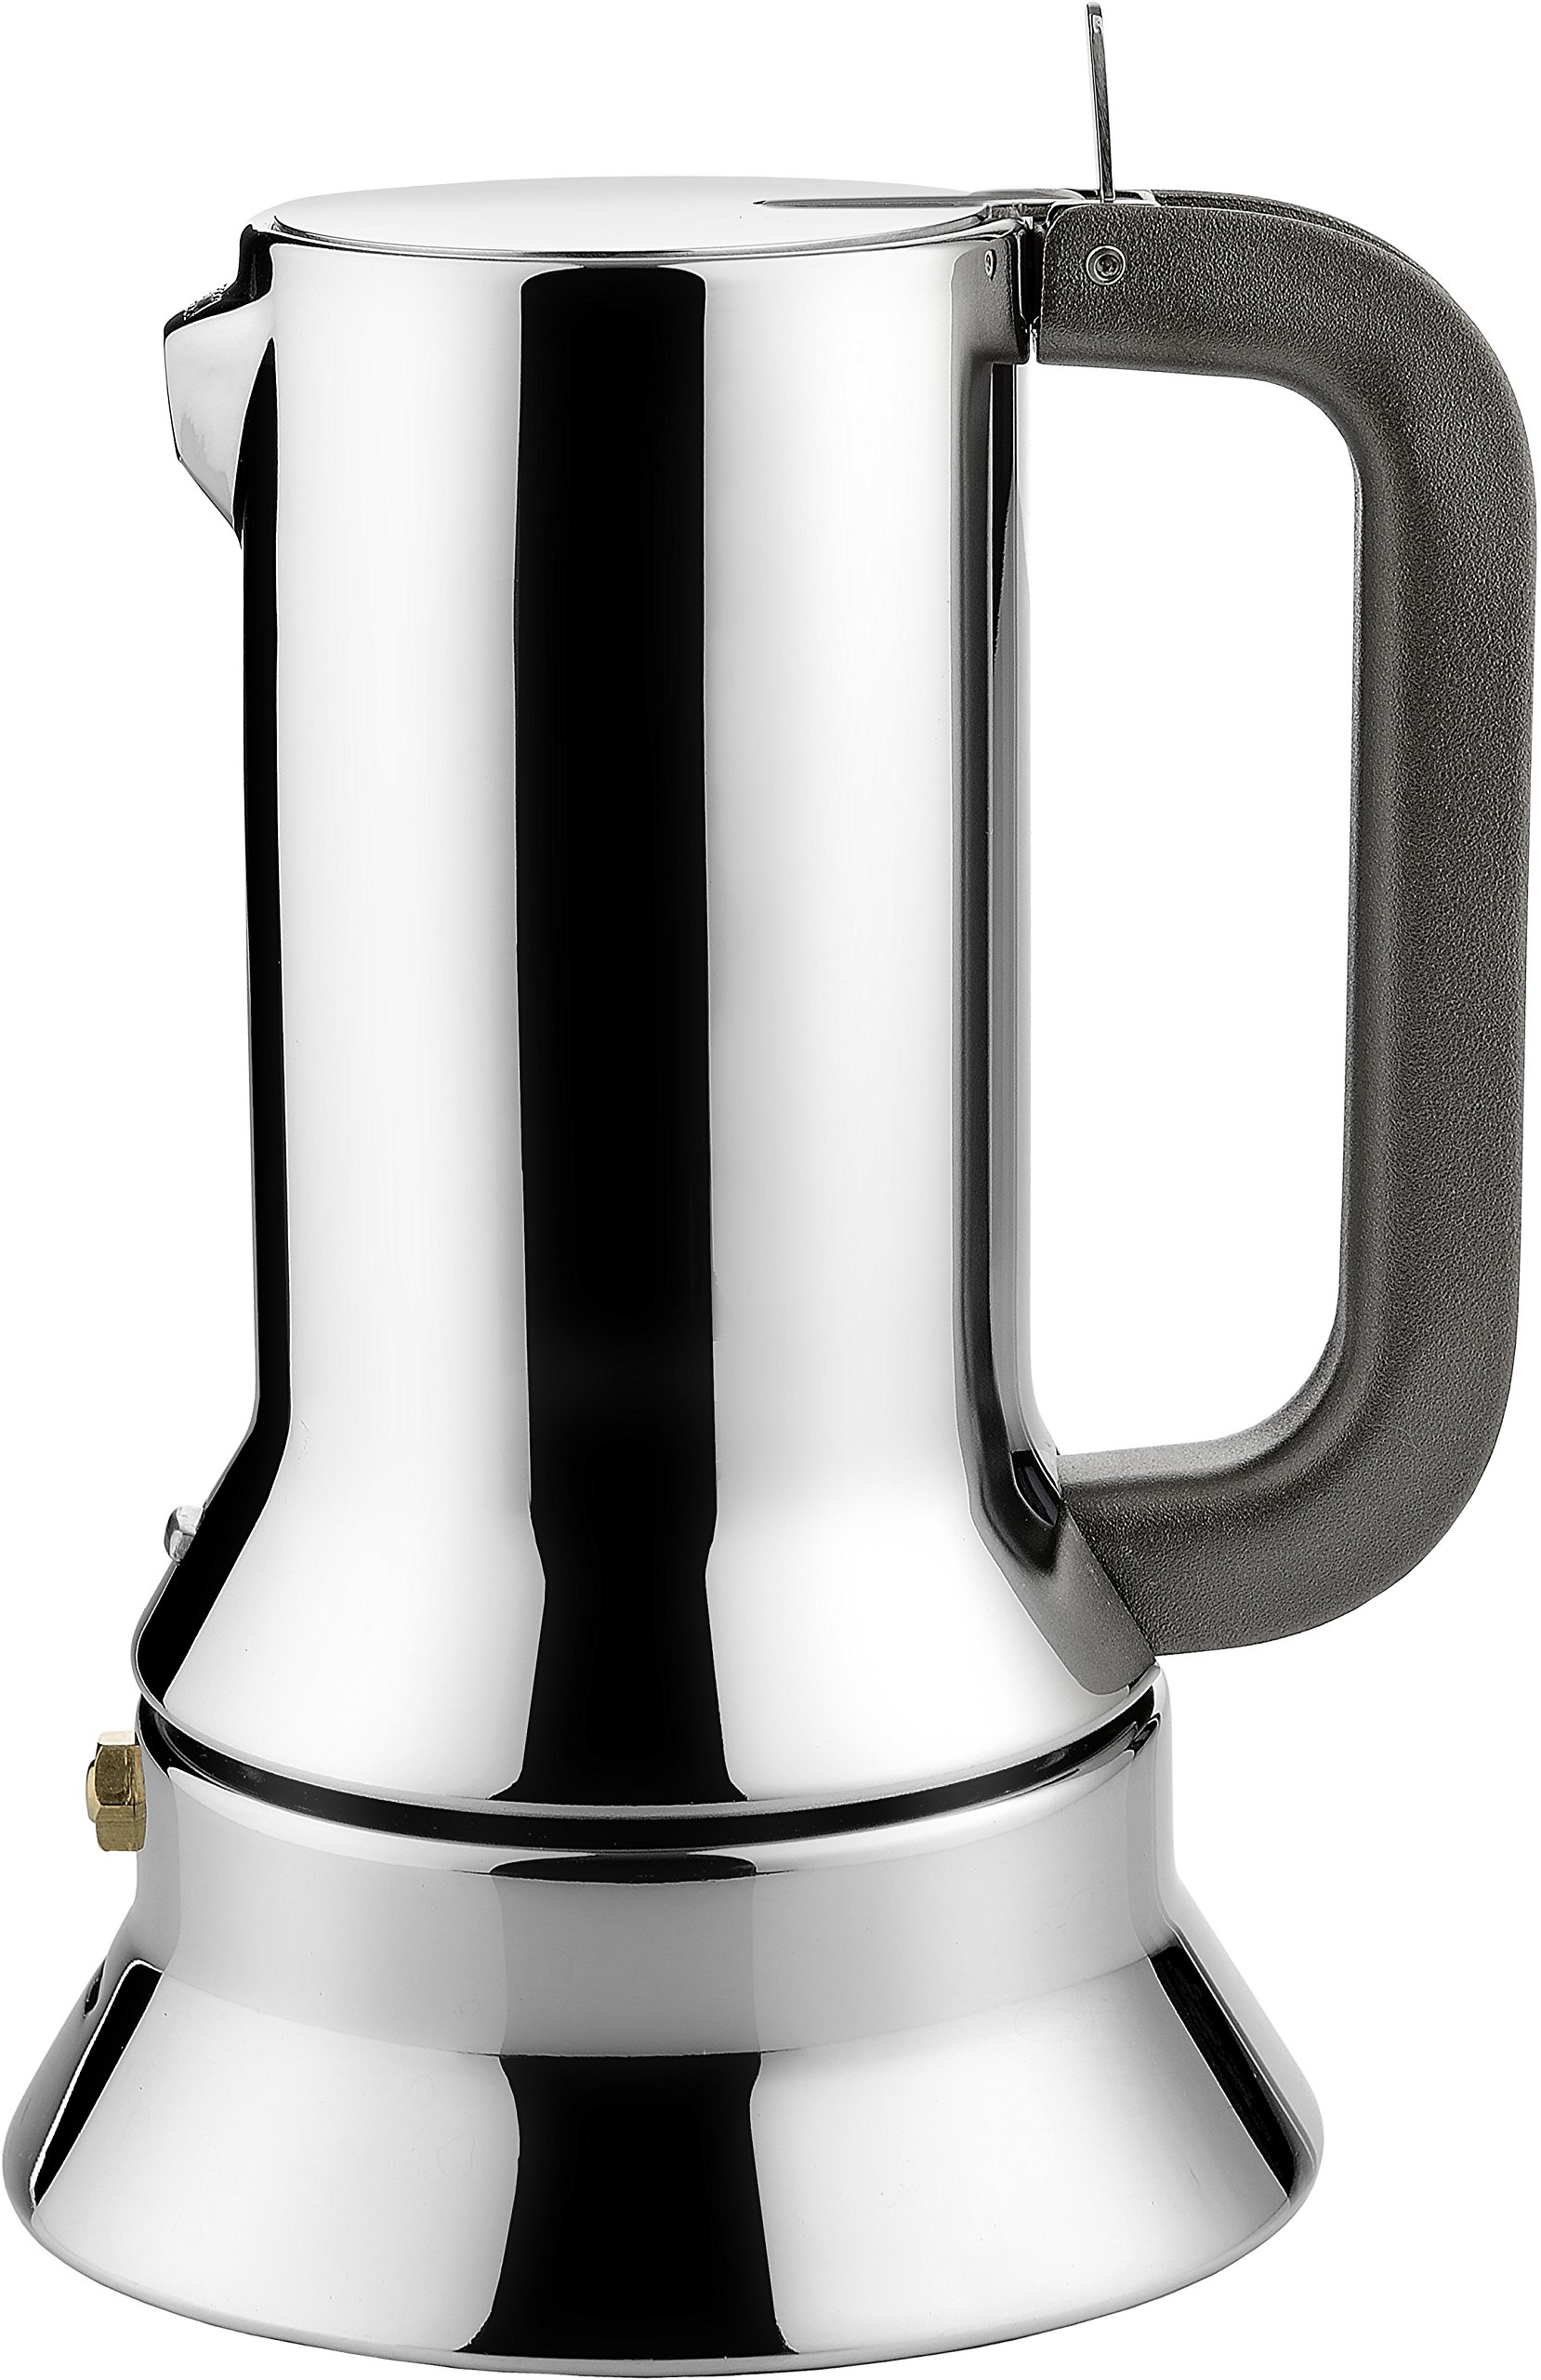 Alessi 9090/3 Stove Top Espresso 3 Cup Coffee Maker in 18/10 Stainless Steel Mirror Polished With Magnetic Bottom Suitable For Induction Cooking, Silver